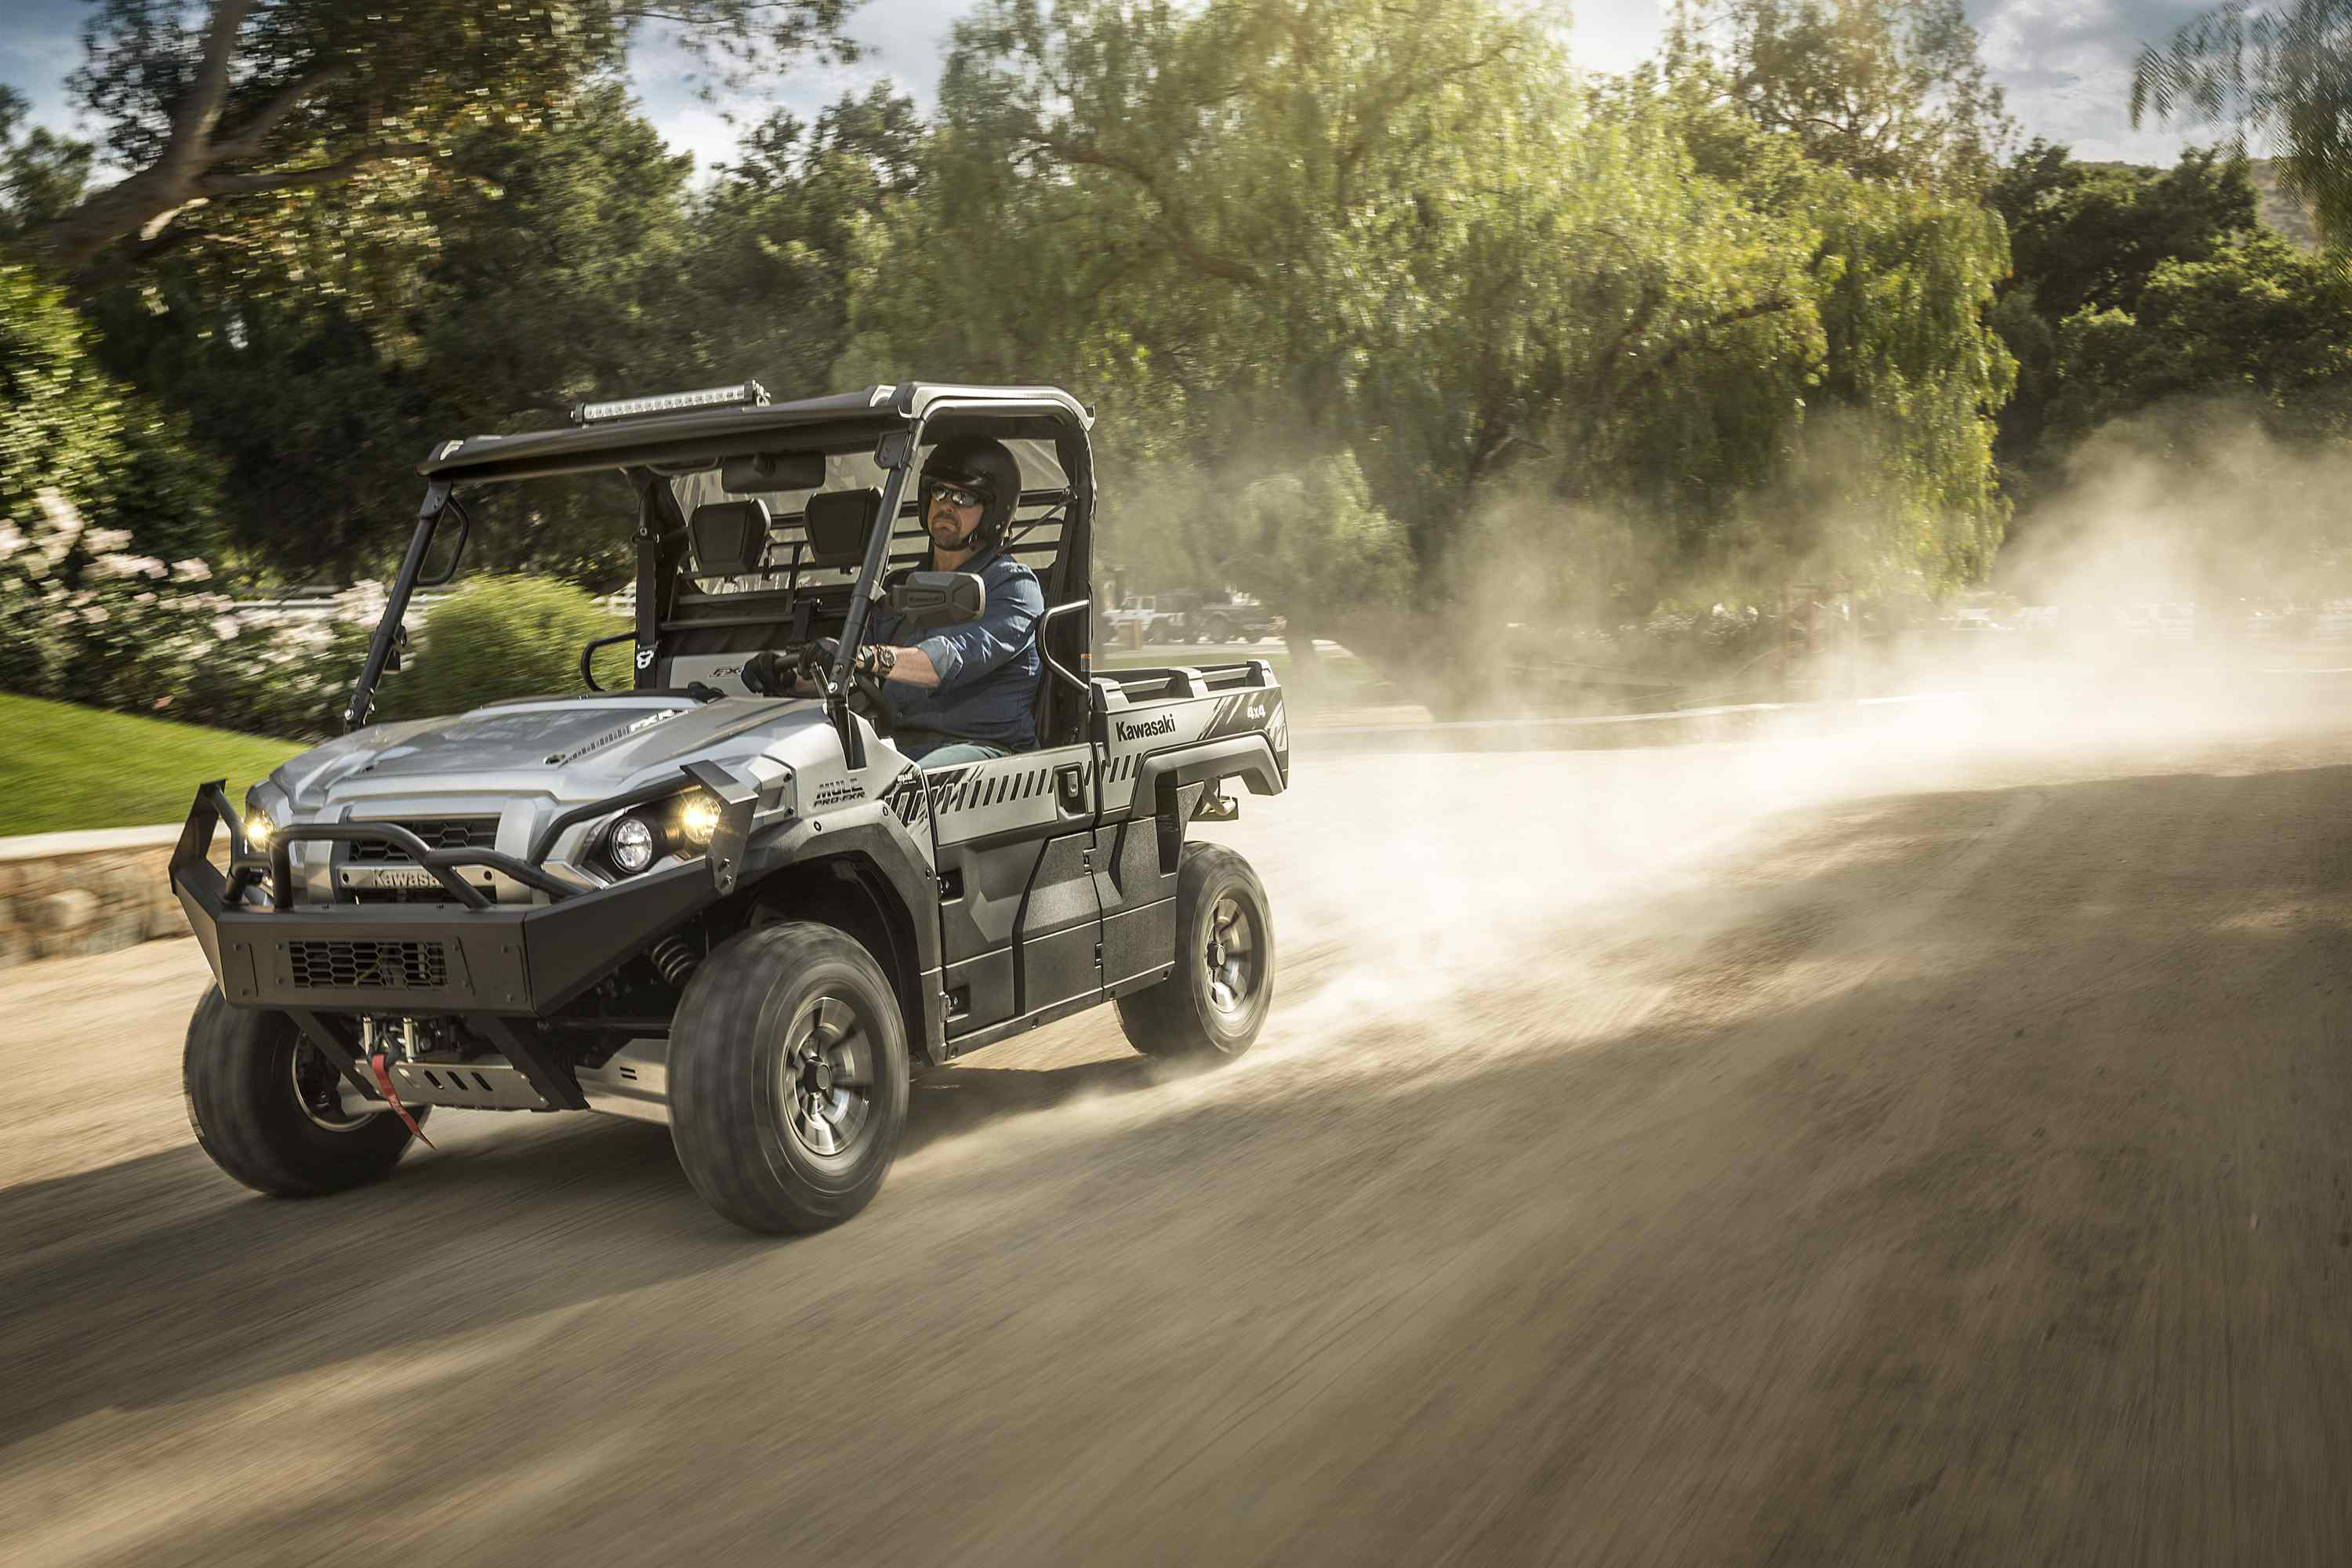 Kawasaki's latest Mule is something to look into